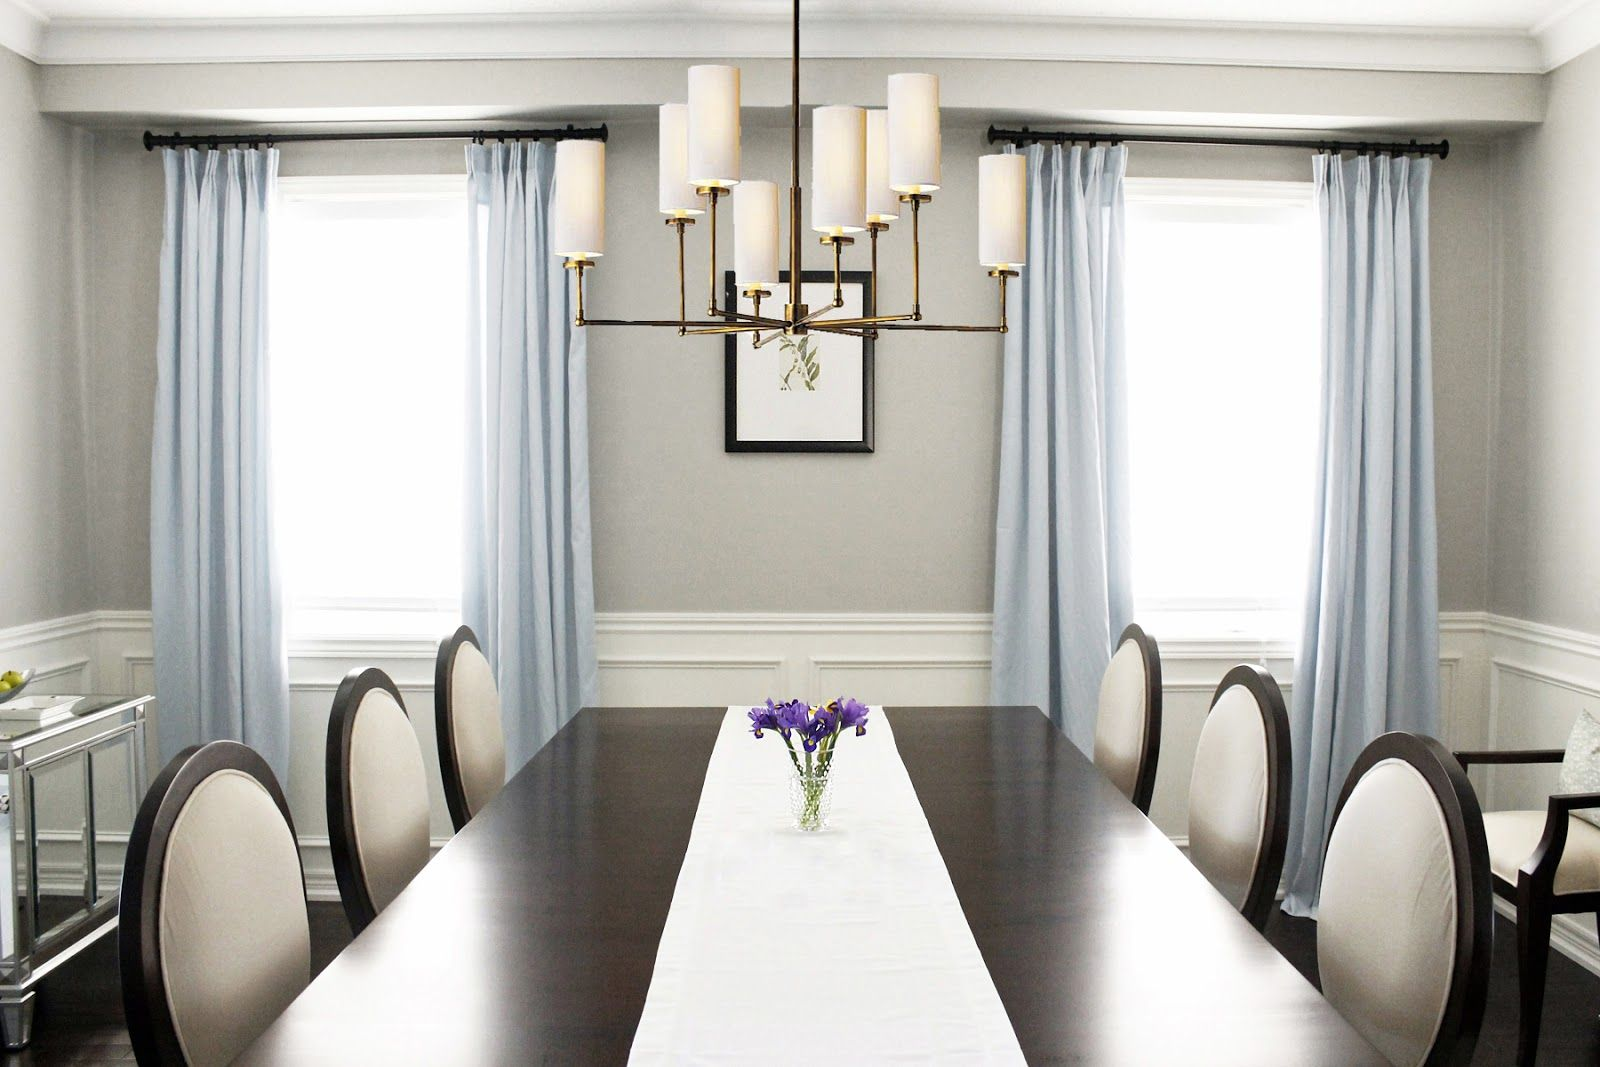 Dining Room In Benjamin Moore Revere Peter Paint Featuring Double Pedestal Mahogany Ding Table With Criss Cross Chairs Atop A Crystal Chandelier